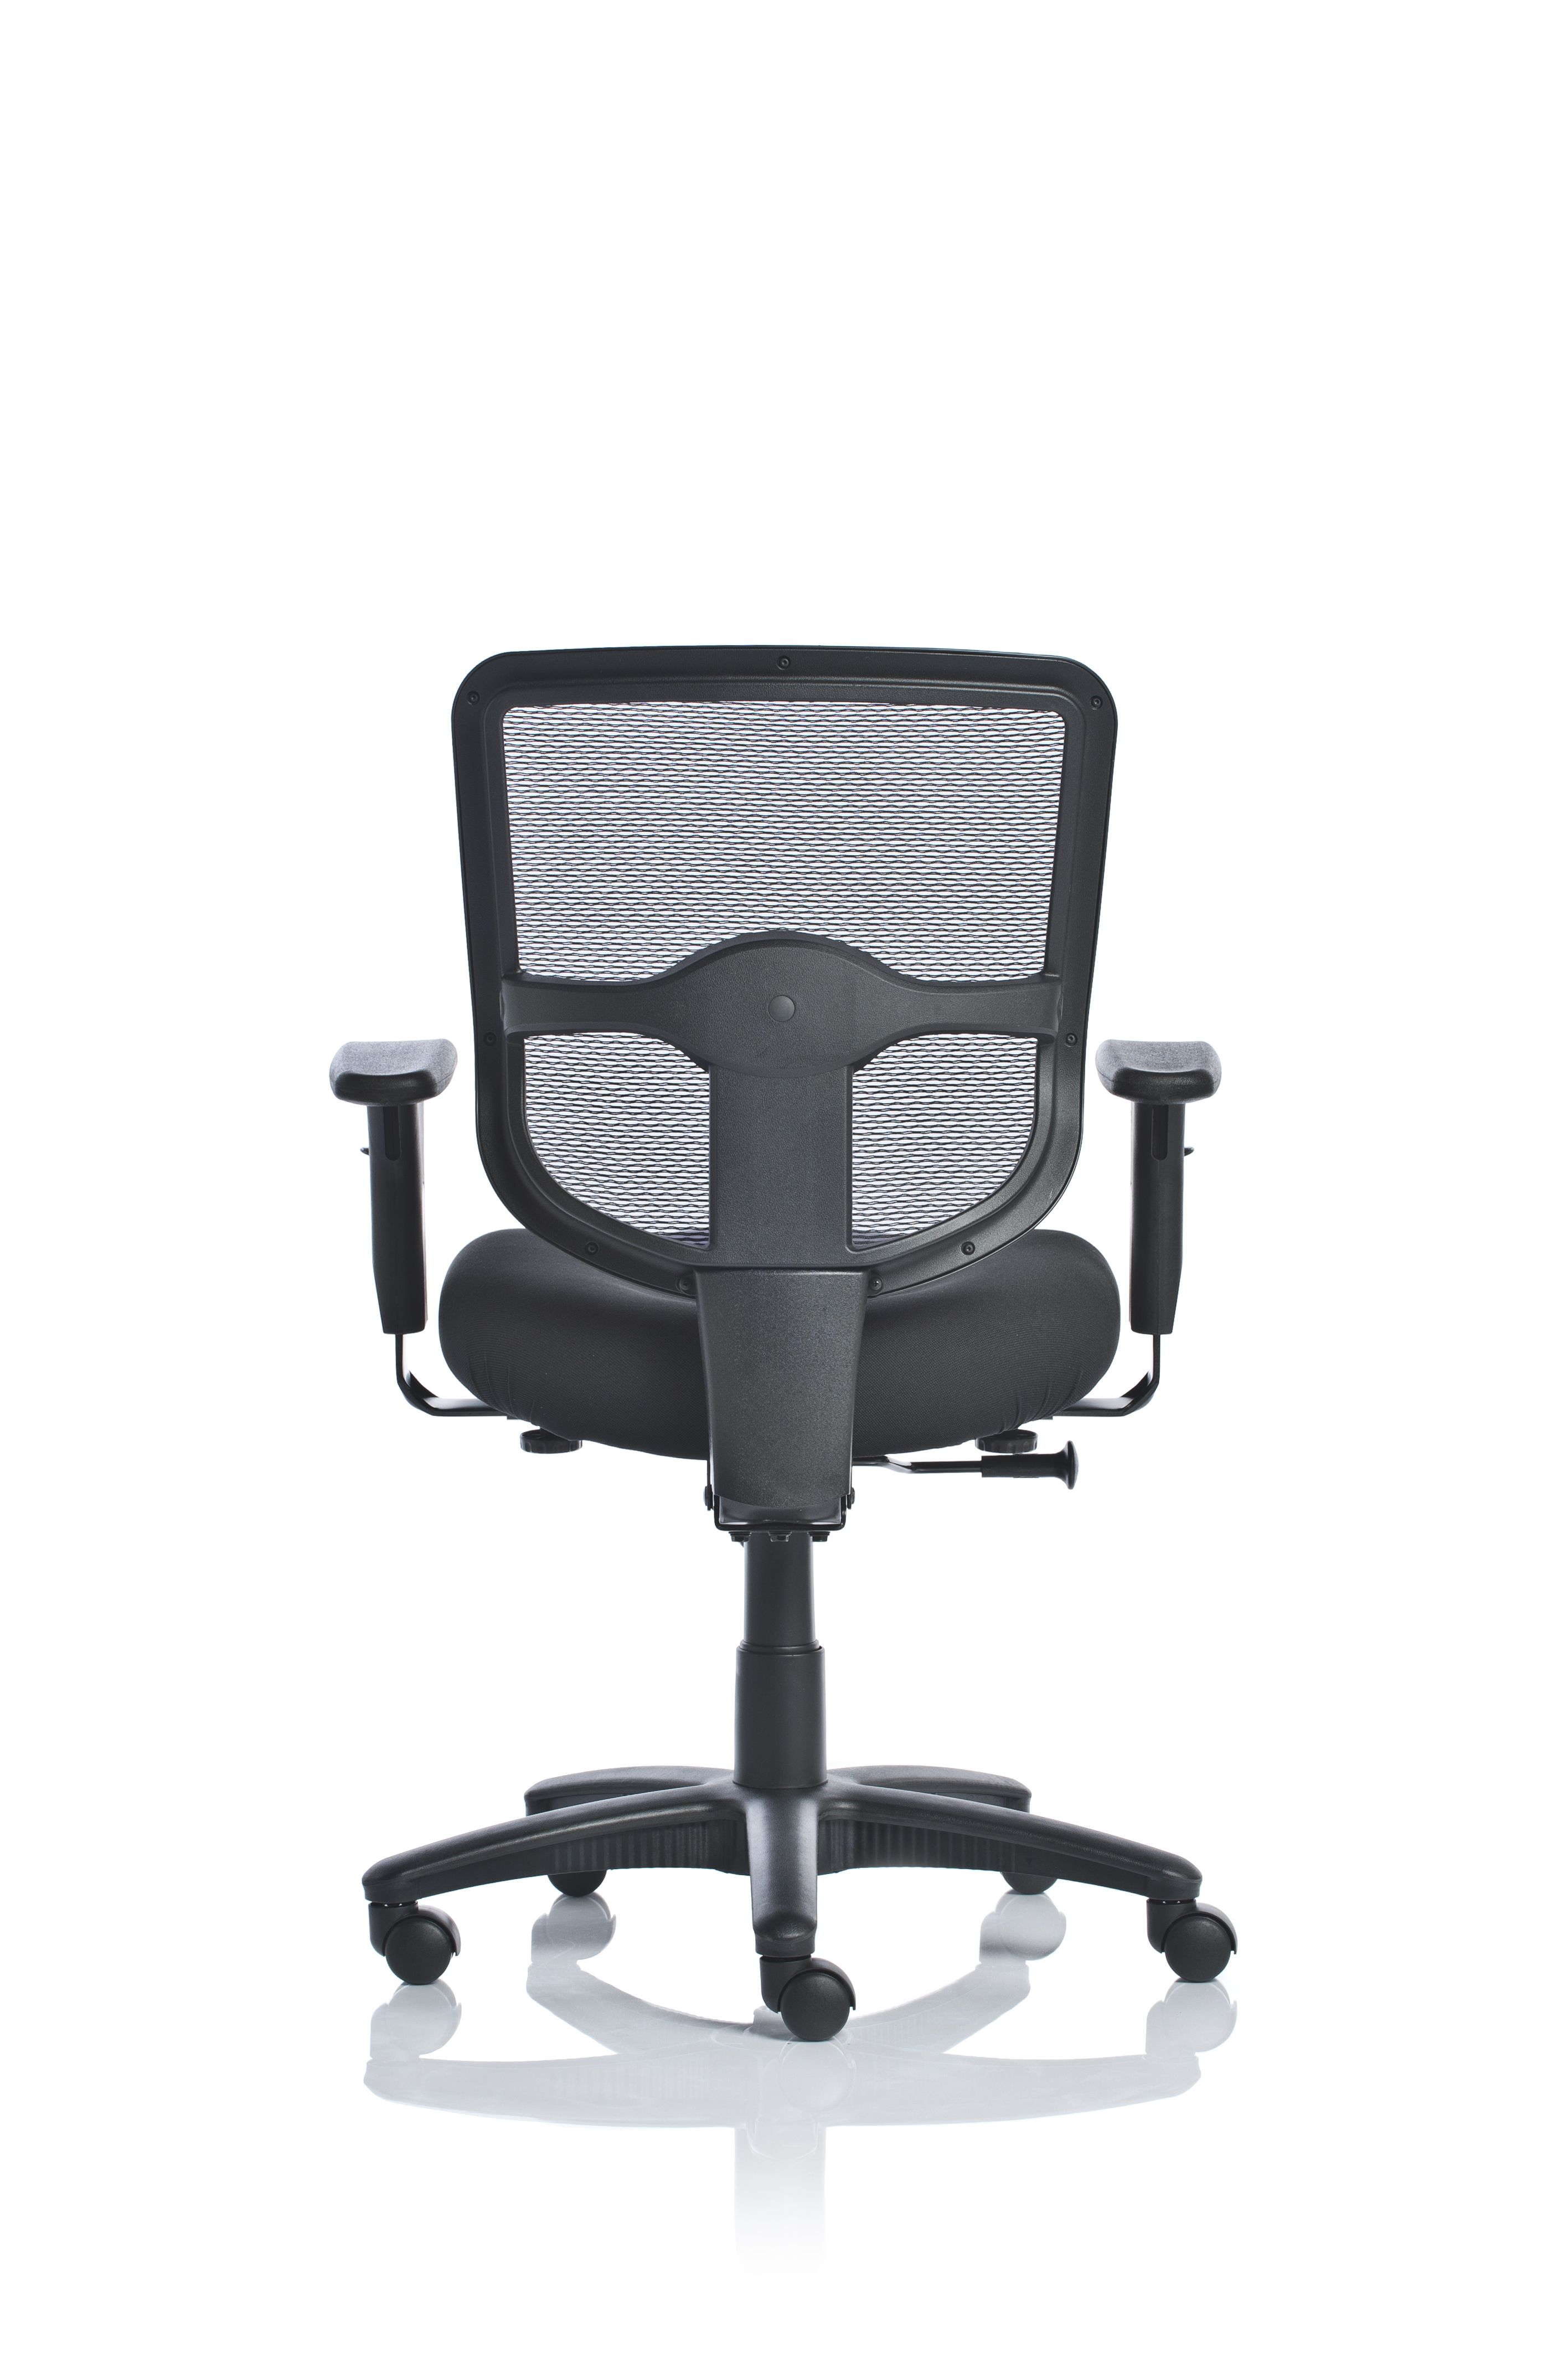 Capri Value Mesh Mid Back Task Chair Officechairs Officeseating Office Work Chairs How To Clean Furniture Contract Furniture Chair